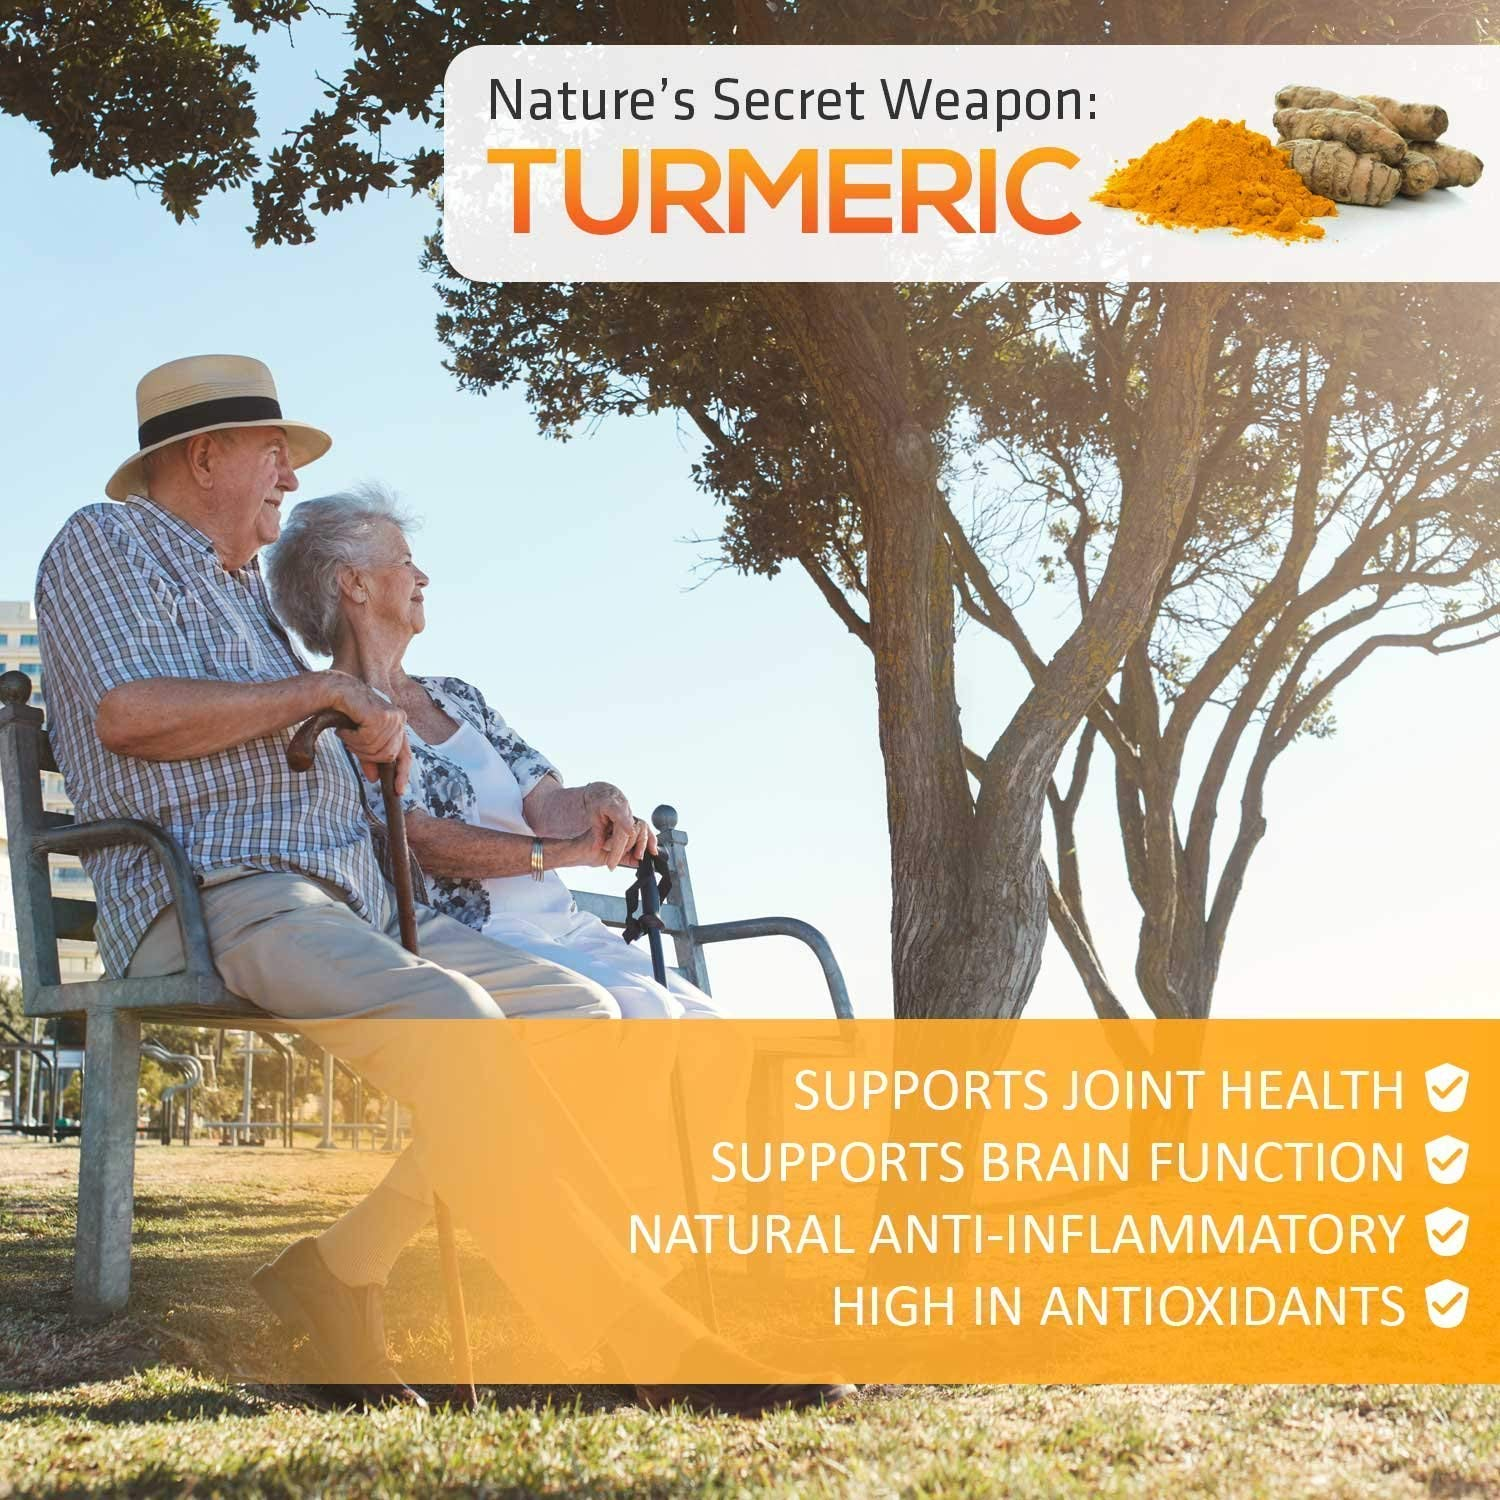 Turmeric Curcumin 95% Curcuminoids Highest Potency with BioPerine and Ginger 1950mg - Black Pepper for Best Absorption, Made in USA, Best Vegan Joint Pain Relief, Turmeric Ginger Pills - 60 Capsules